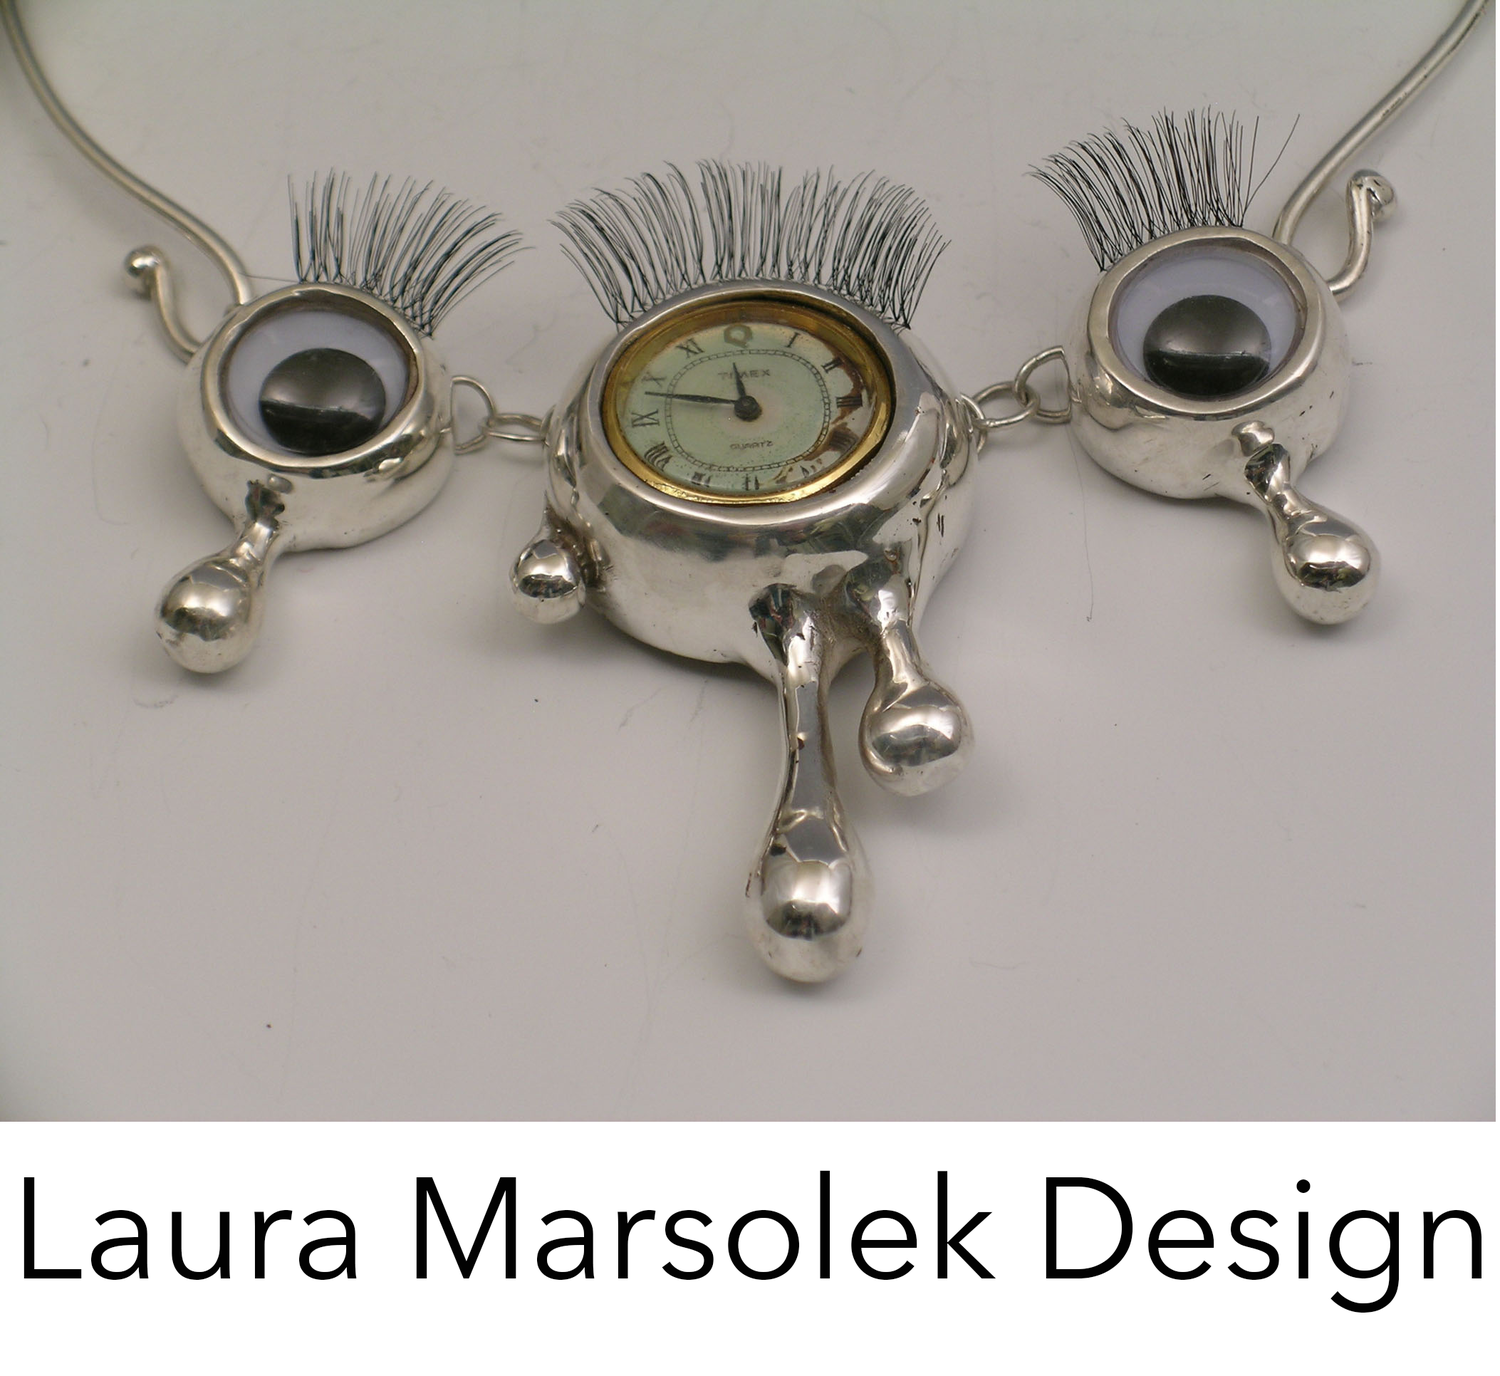 Laura Marsolek Design